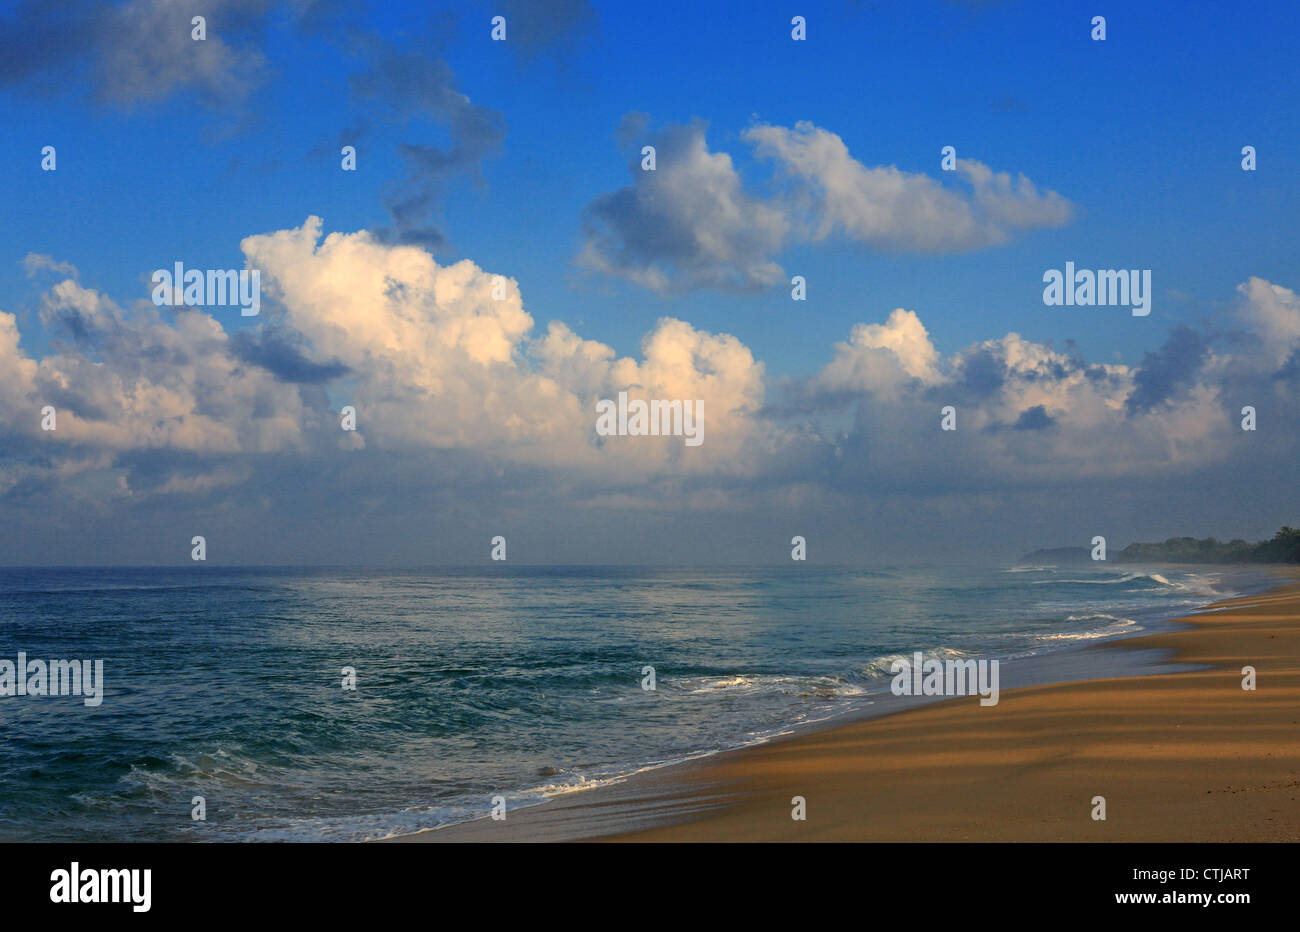 Deserted tropical beach in south Sumatra, Indonesia. - Stock Image